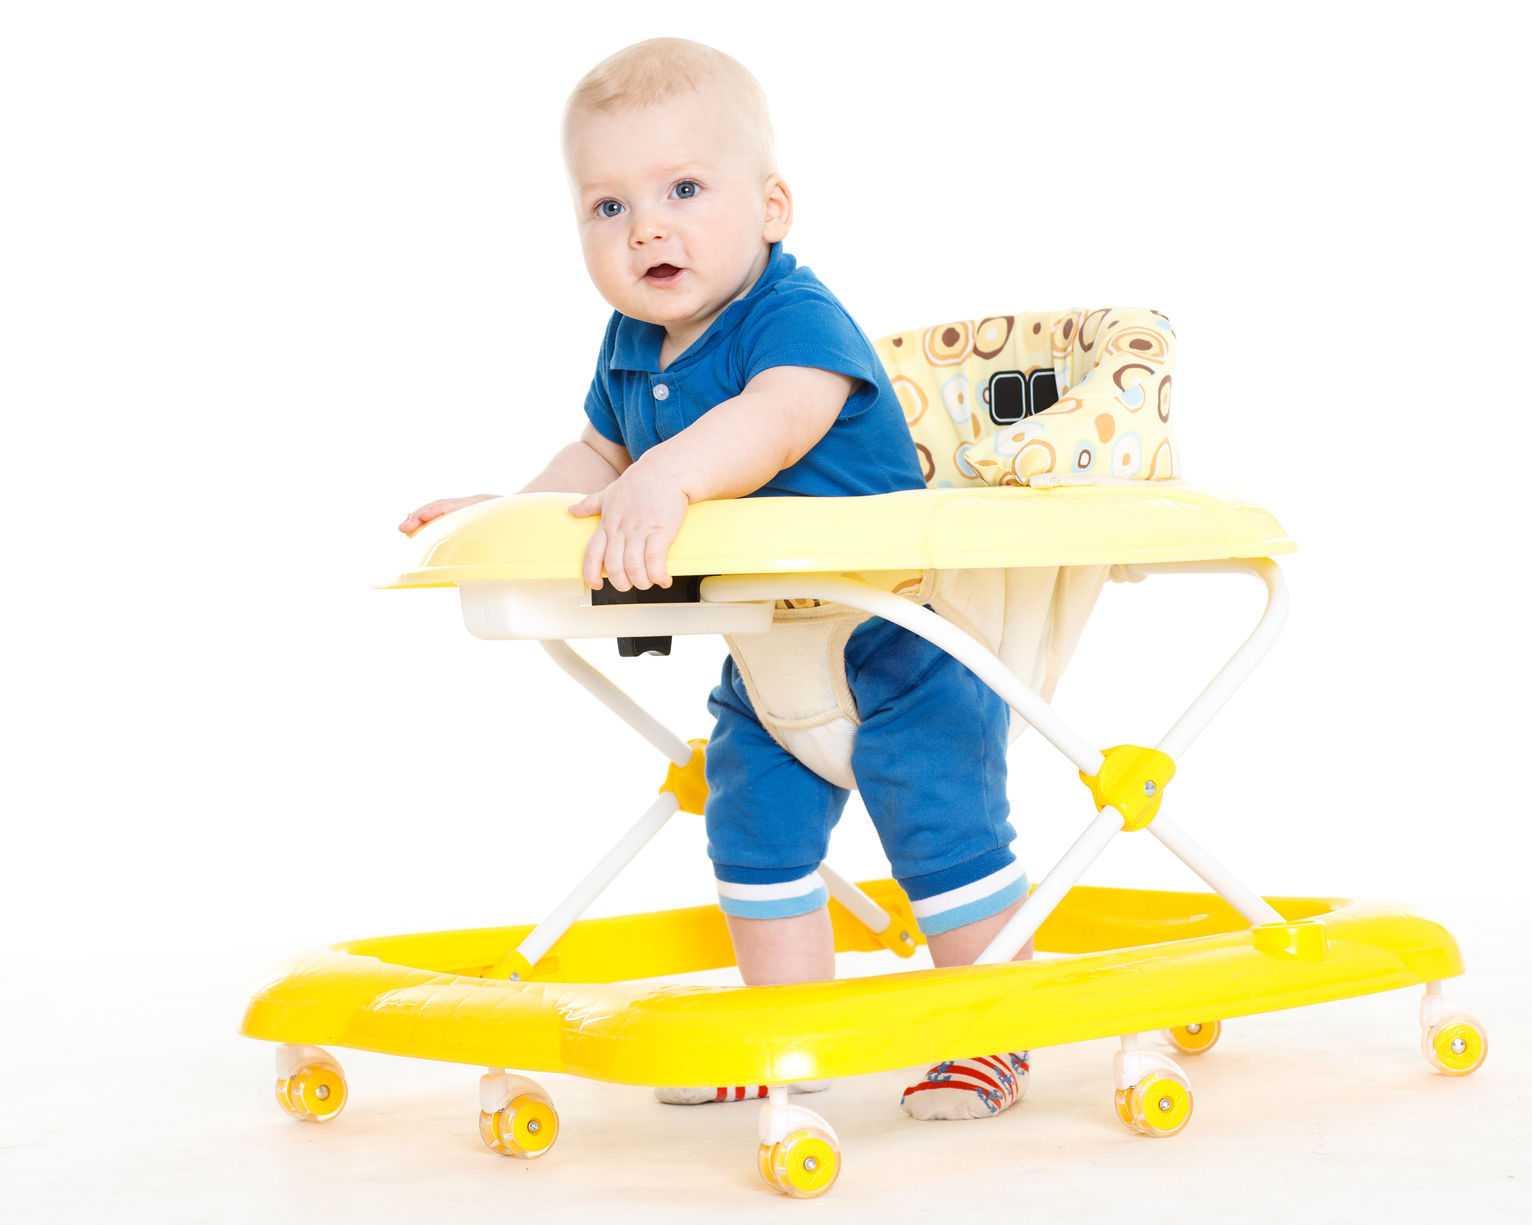 WHY TO AVOID BABY WALKERS